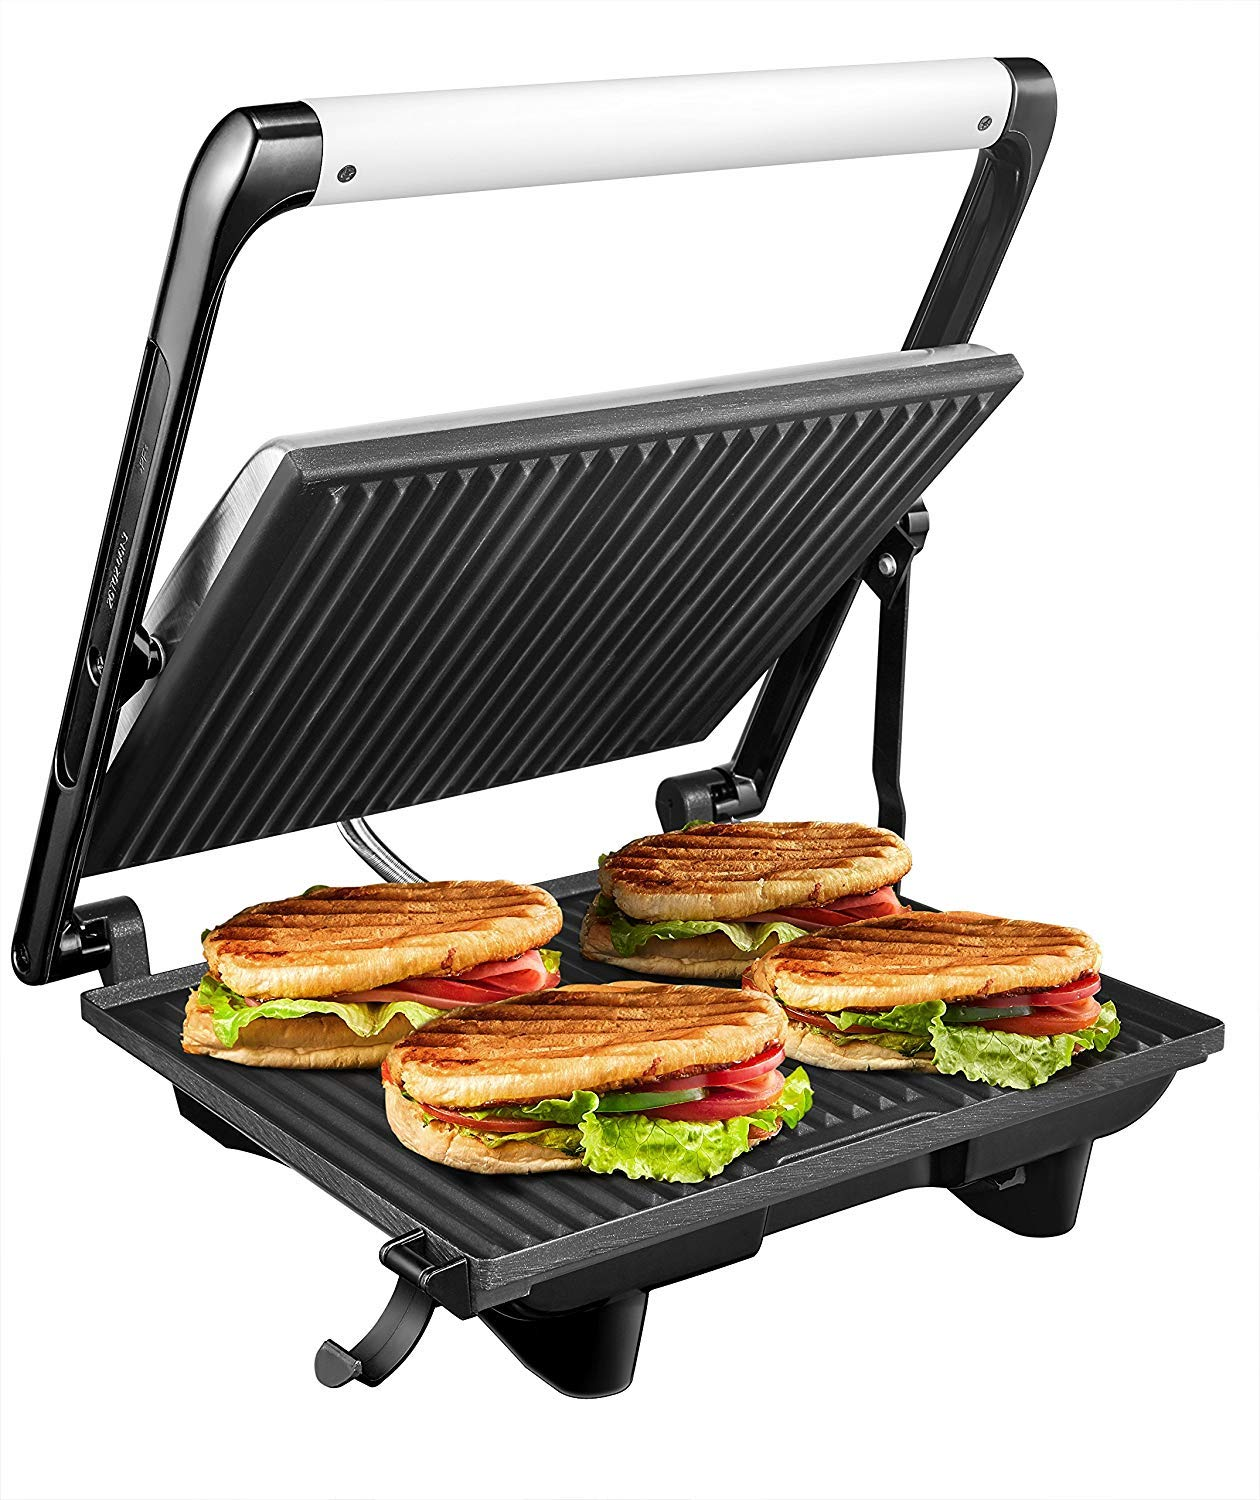 Panini Press Grill Electric Sandwich Maker Nonstick Panini Maker Fast Heating Easy Operate with Adjustable Height Control, Extra-large Plate, Easy to Store and Carry, 1200W, Stainless Steel, Aicok